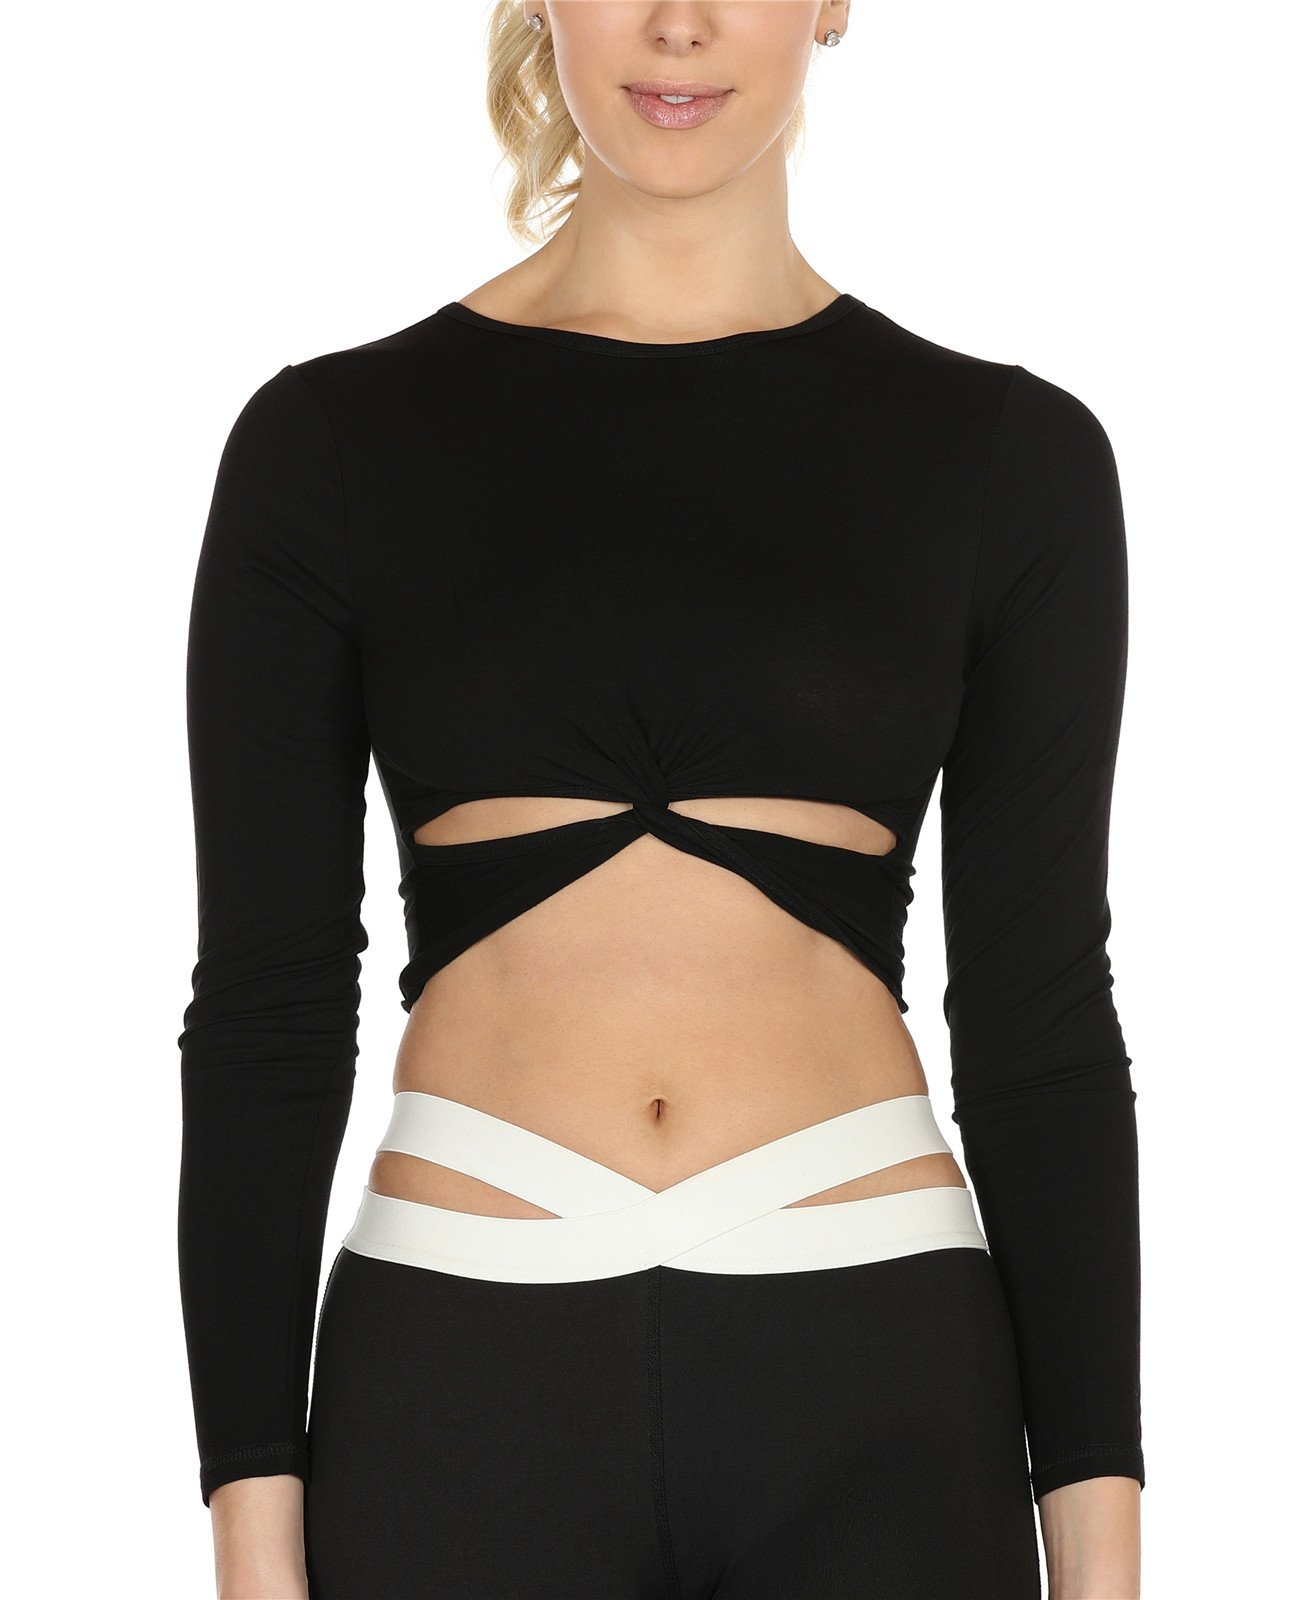 icyzone Long Sleeve Crop Tops for Women - Activewear Workout Yoga Gym Lounge T Shirts (Black, L)